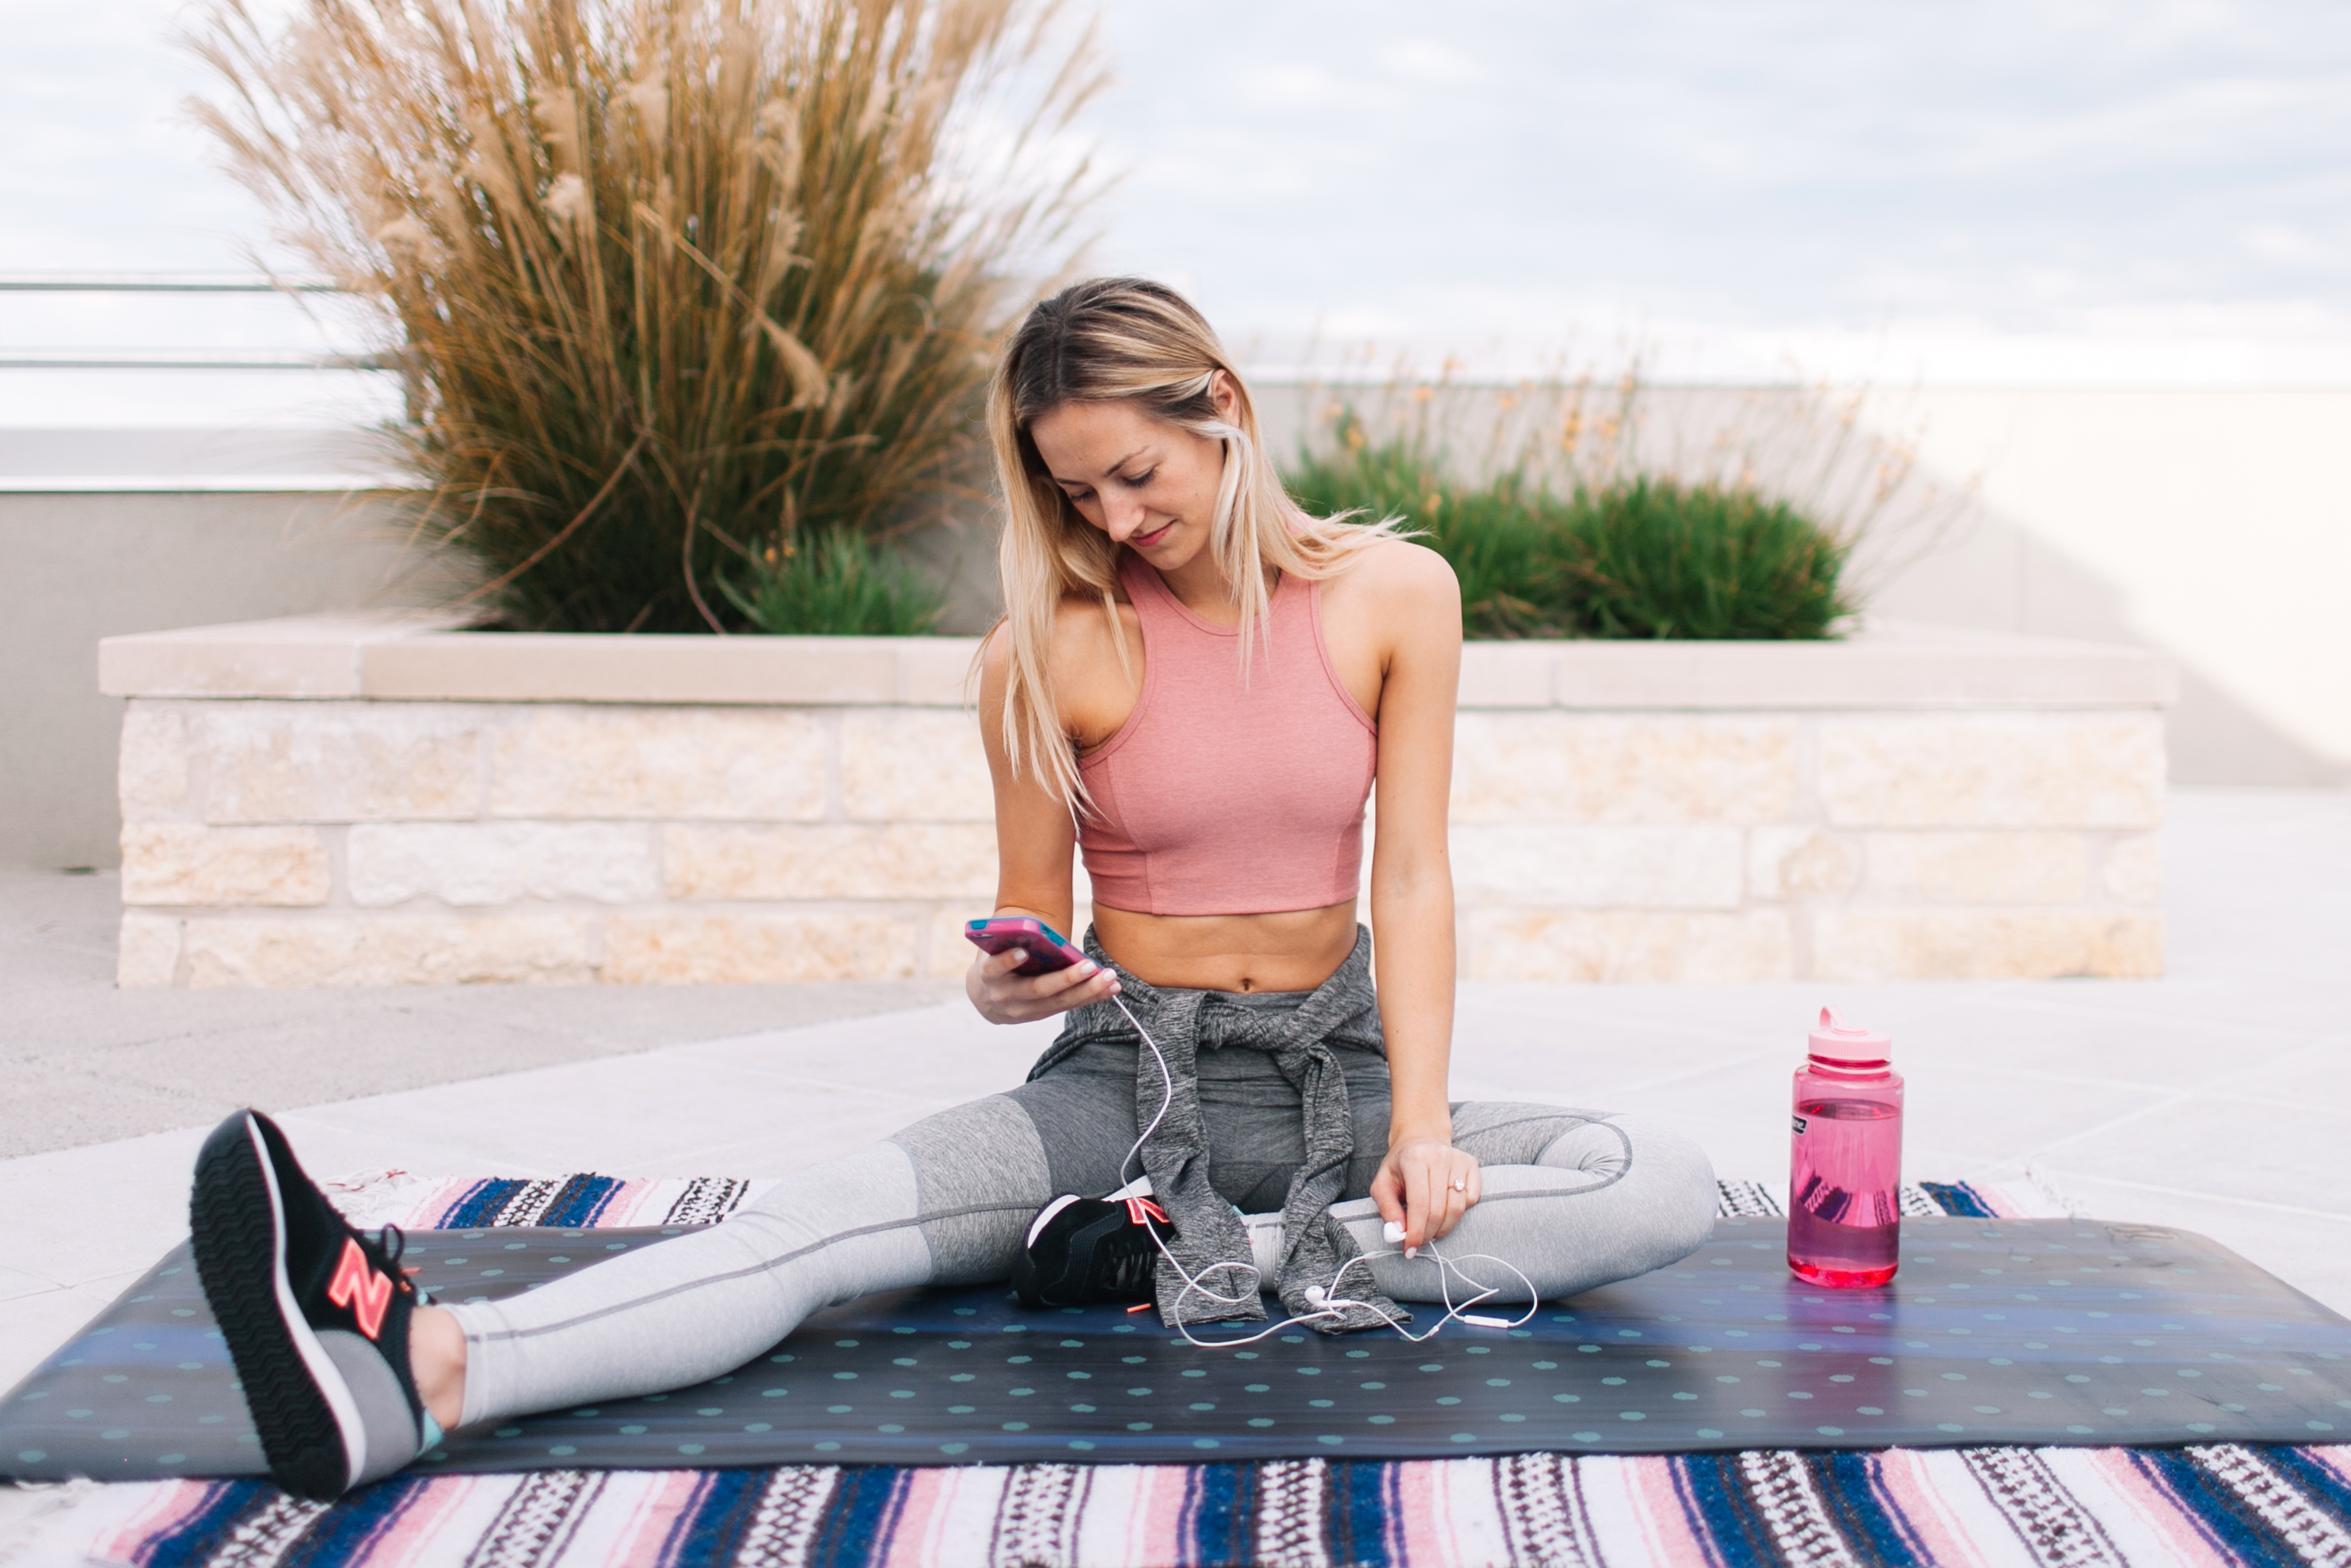 livvyland-blog-olivia-watson-kayla-snell-photography-new-balance-cw620-sneakers-outdoor-voices-athena-crop-top-gradient-leggings-catch-me-if-you-can-hoodie-austin-texas-fashion-fitness-blogger-7